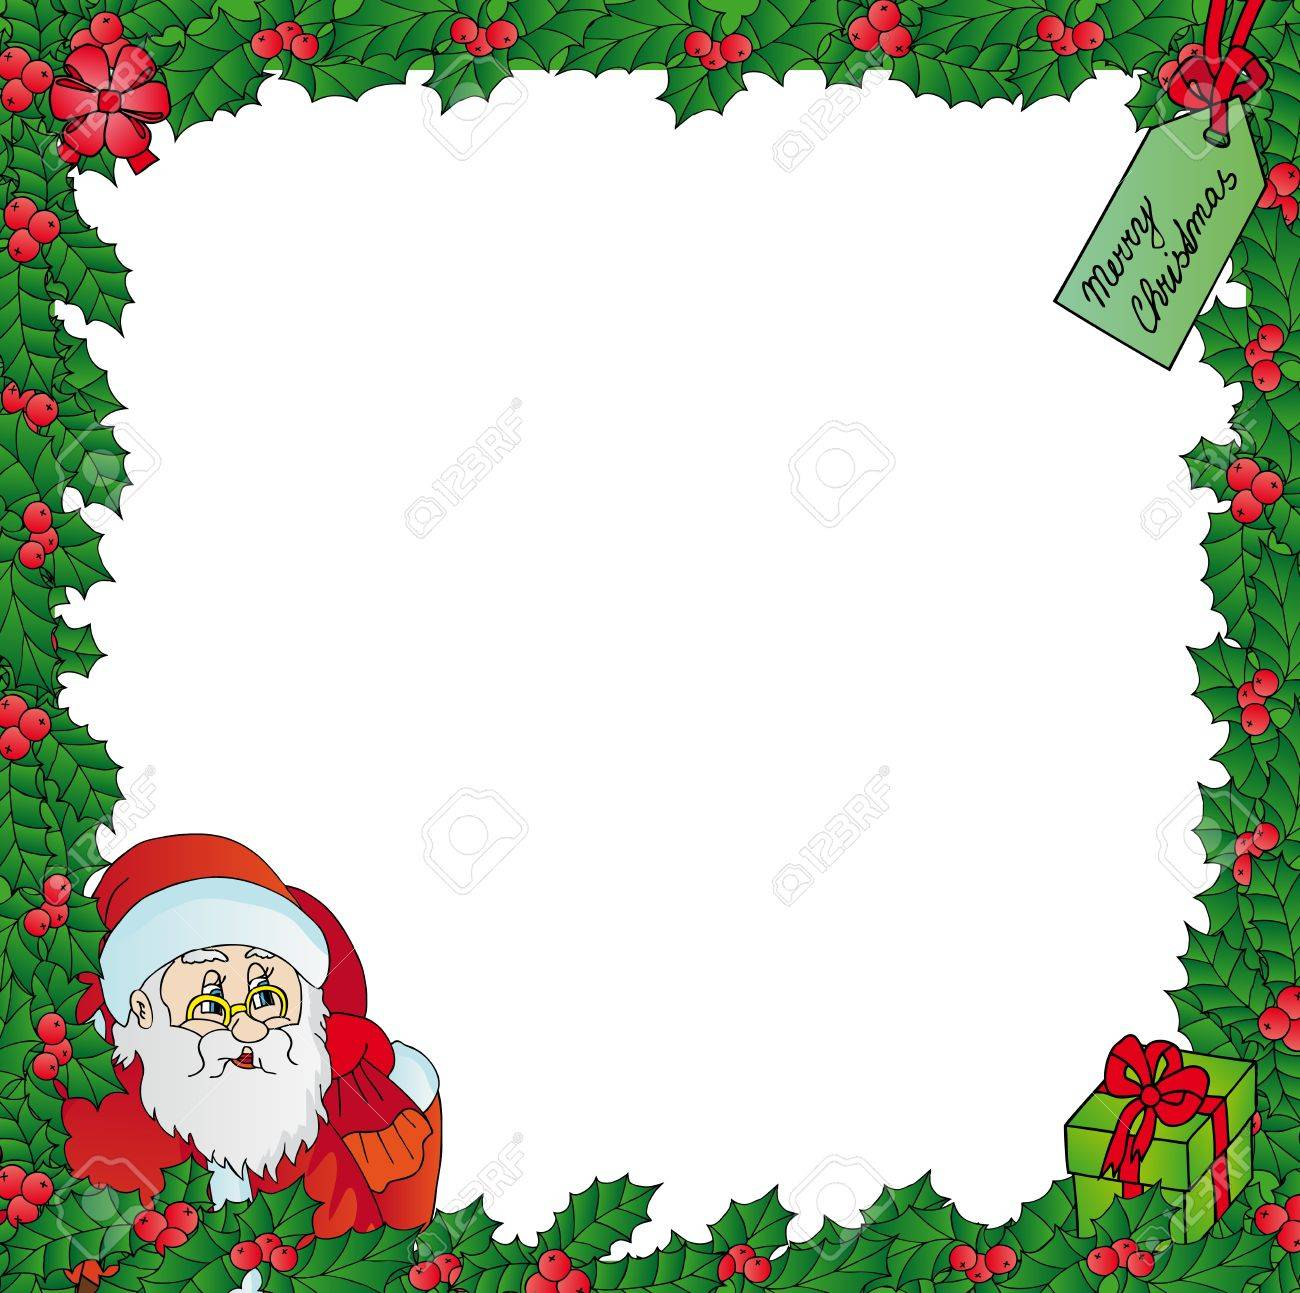 Mistletoe frame with Santa - vector illustration. Stock Vector - 16439896